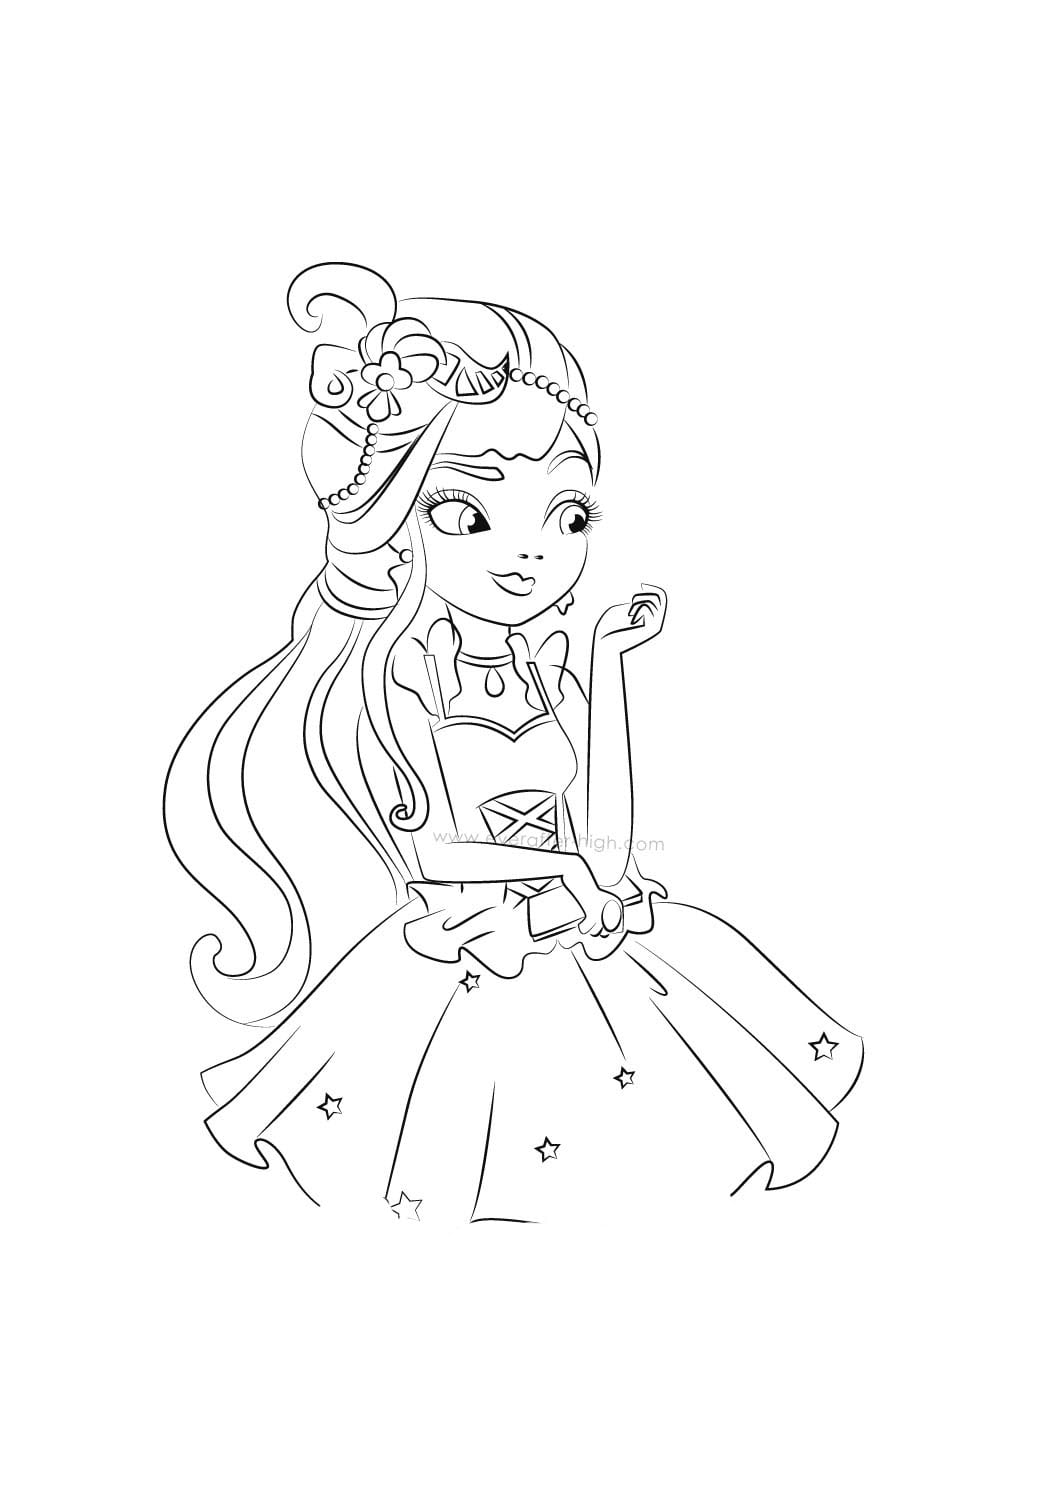 Desenho De Duquesa Swan De Ever After High Para Colorir